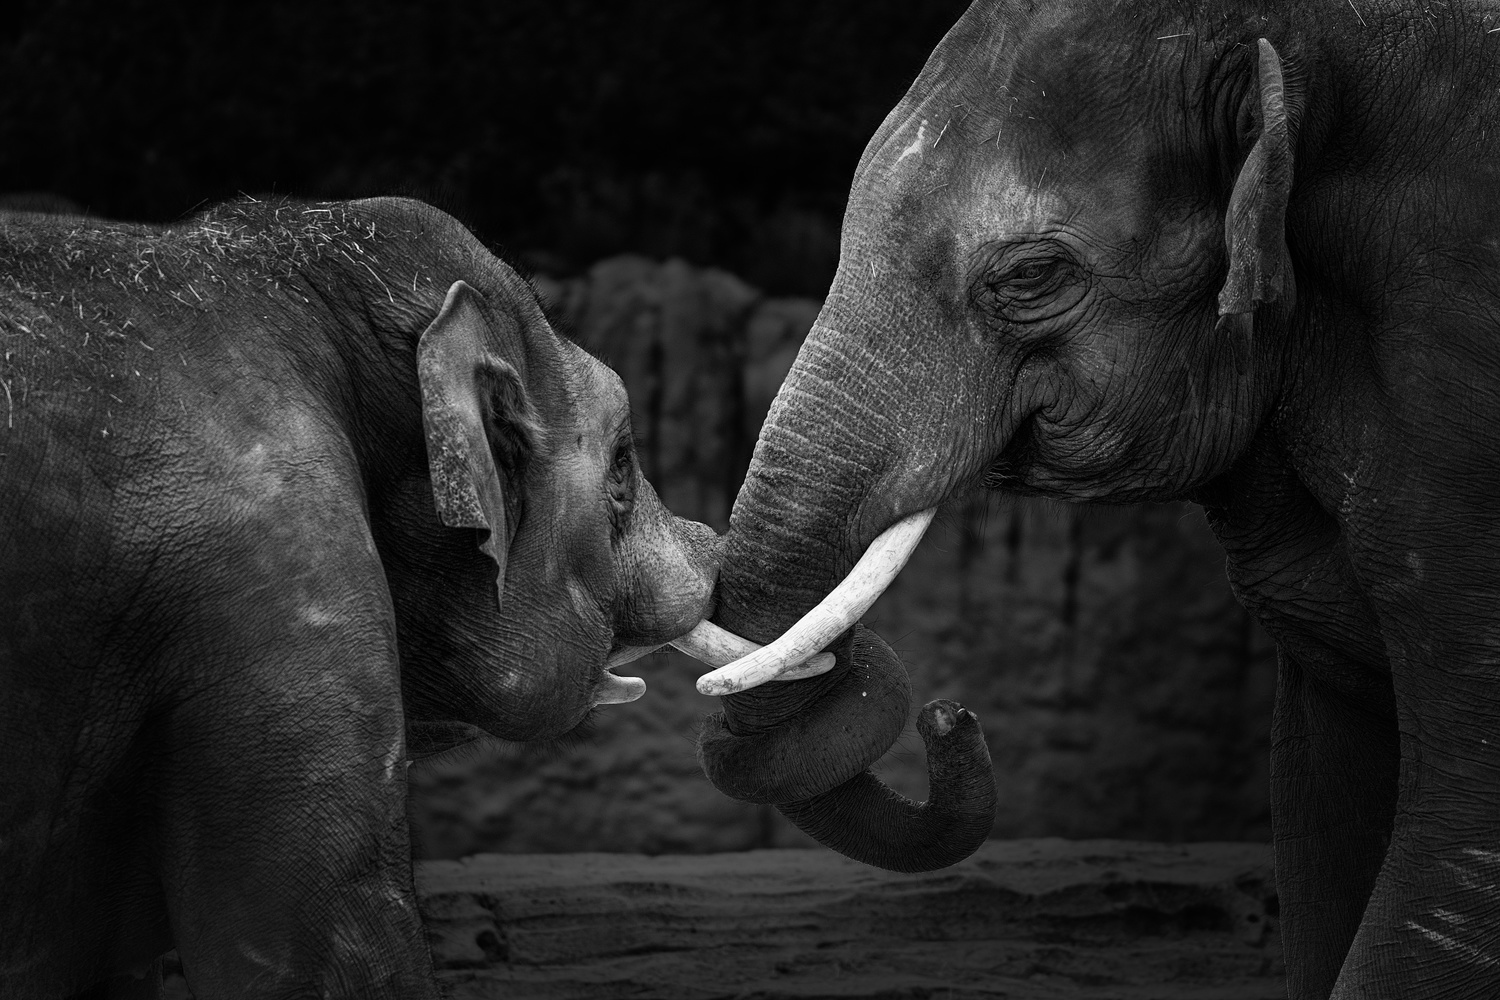 Elephants in black and white by Patrick Snitjer